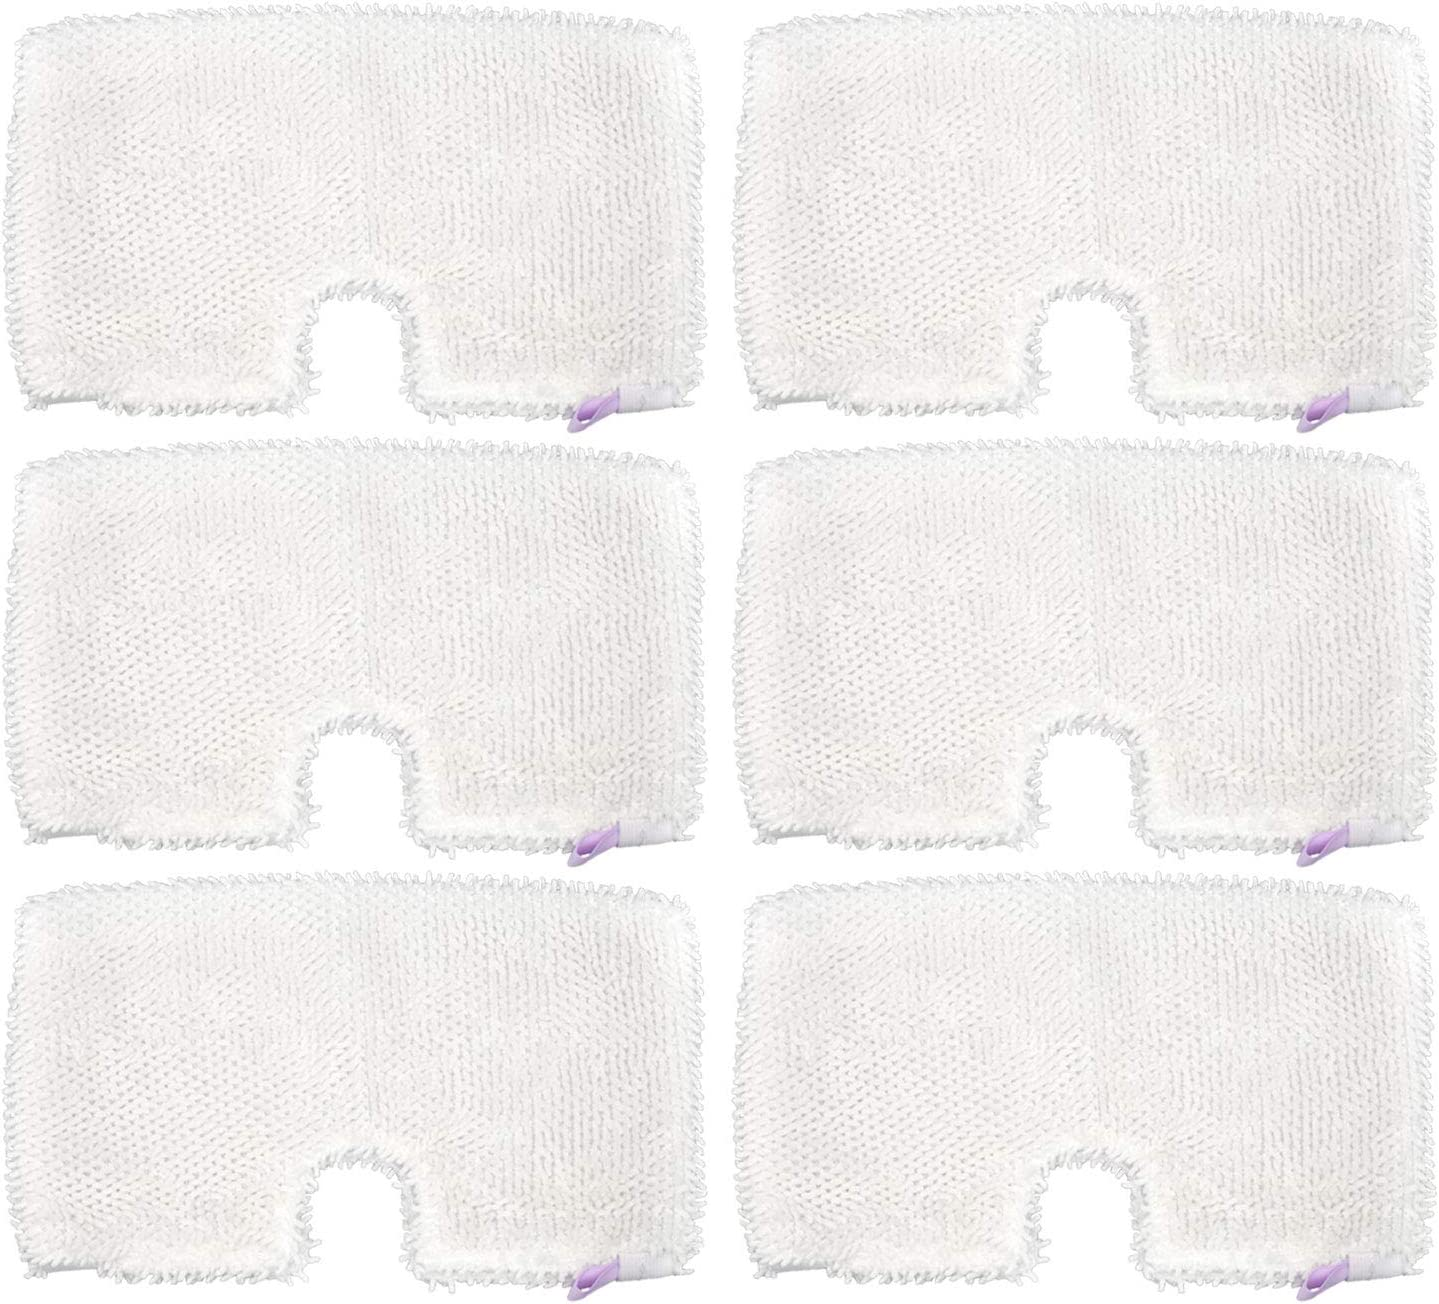 Extolife 6 Pack Washable Microfiber Steam Mop Pads Replacement for Shark Steam Pocket Mops S3501 S3601 S3550 S3801 S3901 S3601D S3801CO S3901D S3455K S2902 SE450